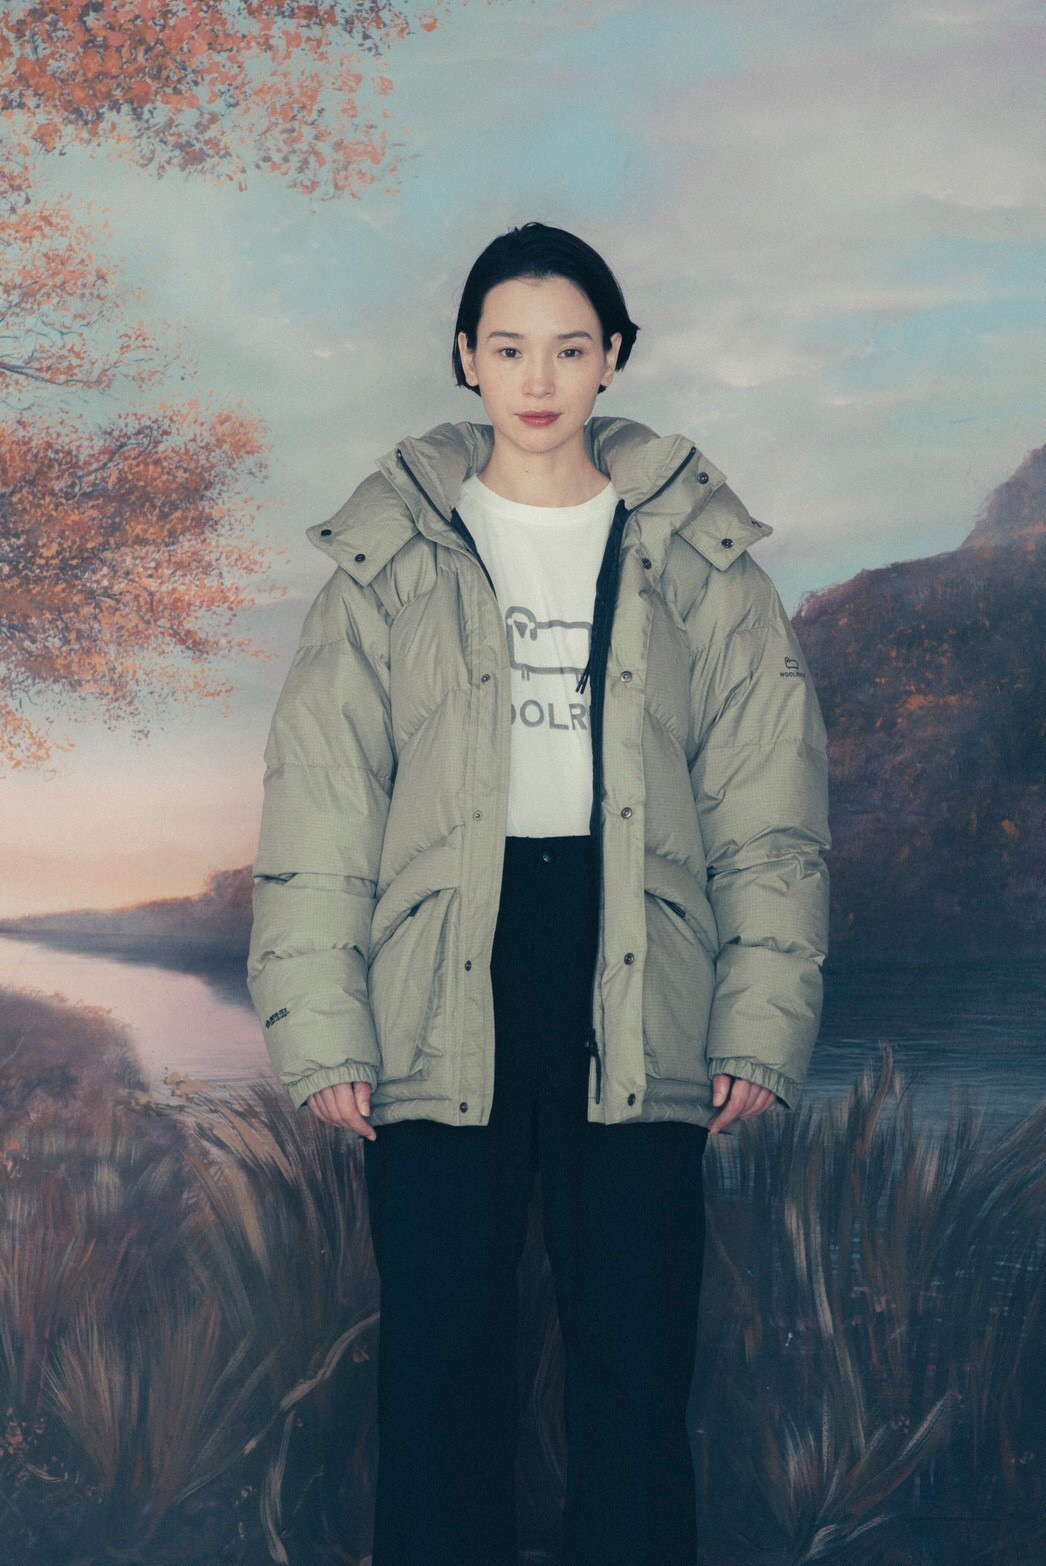 LE MILE MAGAZINE by LE MILE STUDIOS WOOLRICH OUTDOOR LABEL FALL:WINTER 2019 COLLECTION 3.jpg